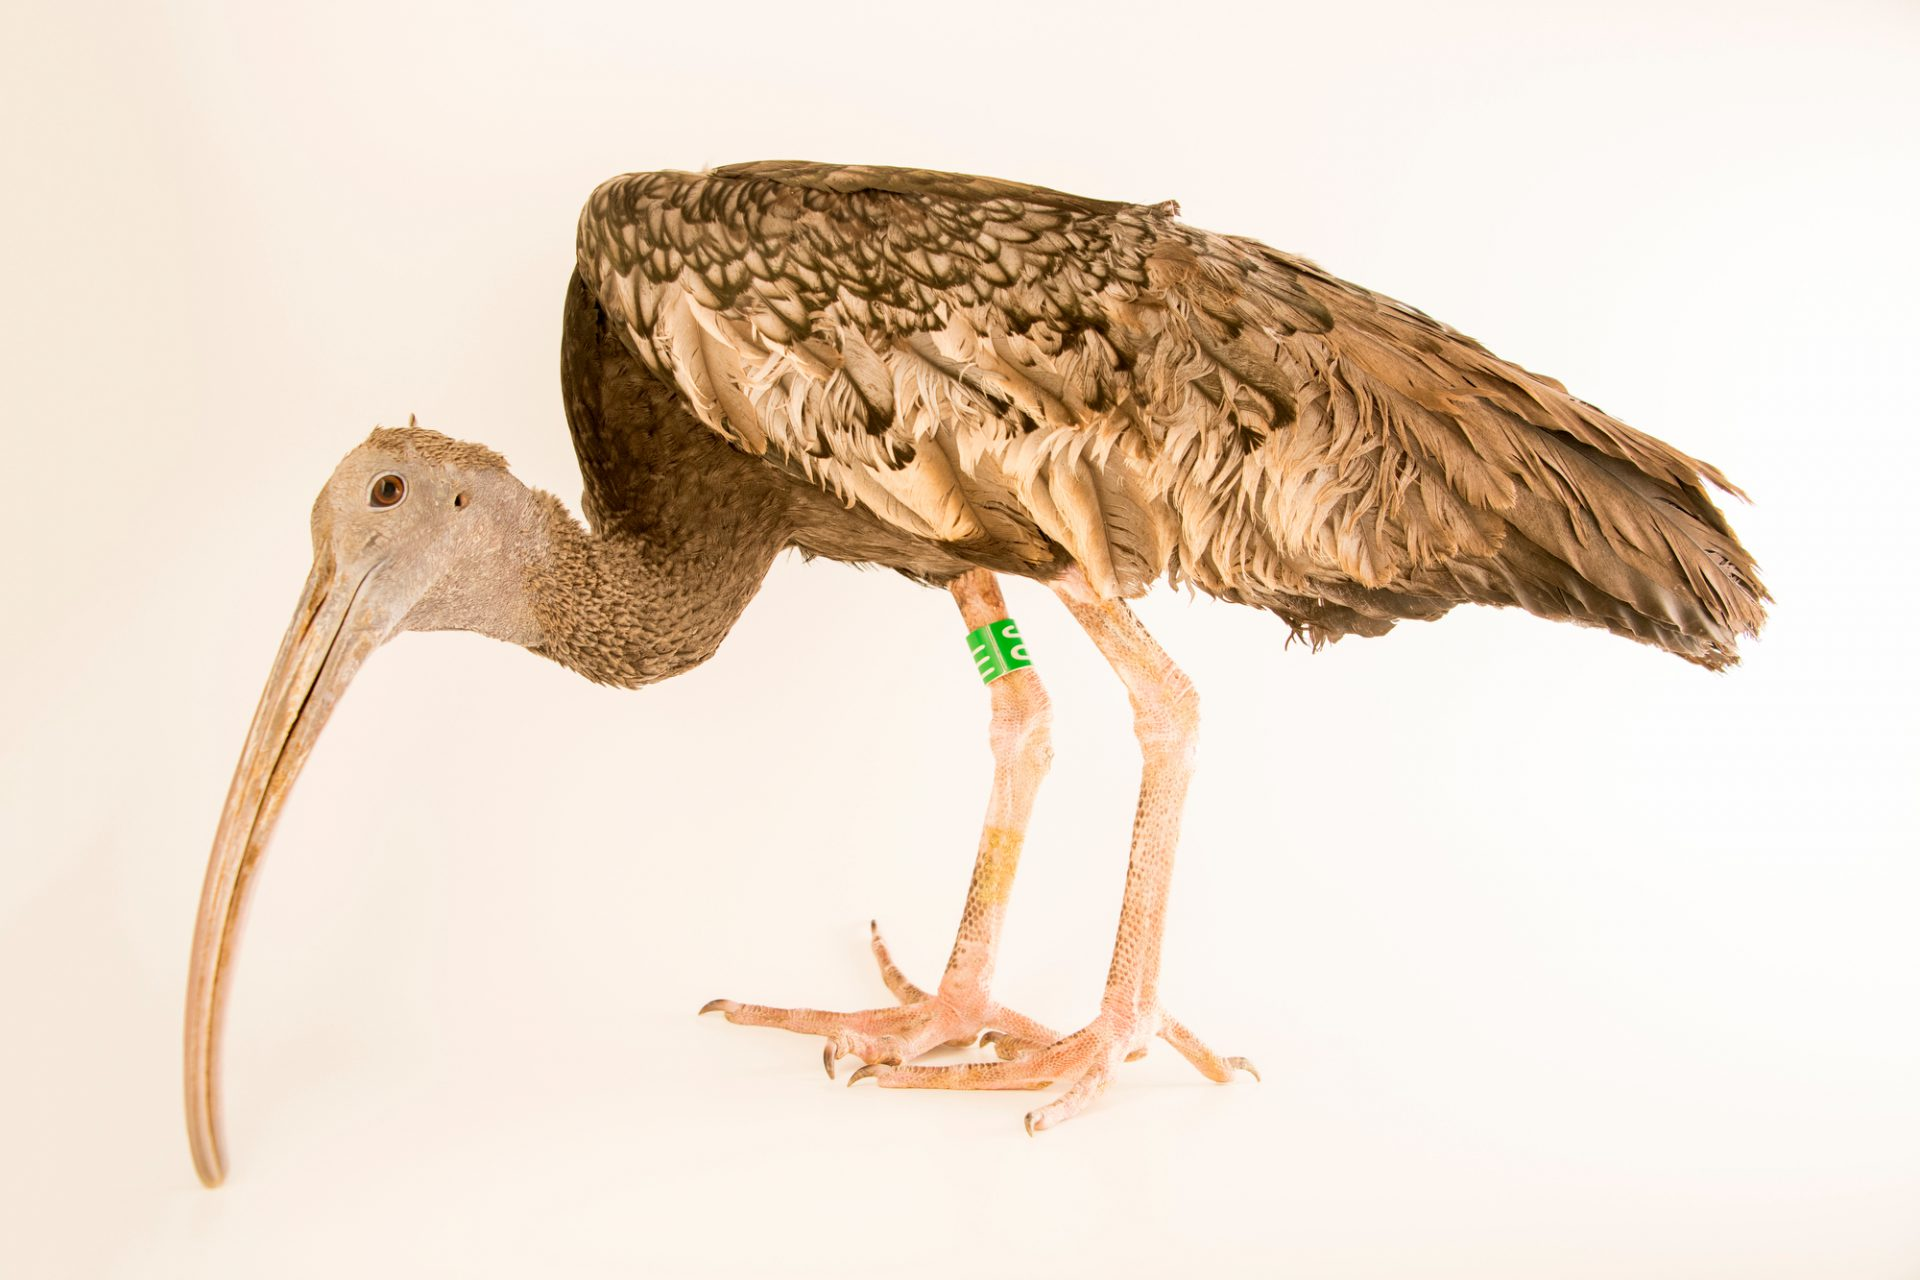 Photo: Critically endangered Giant Ibis (Thaumatibis gigantea) at the Angkor Centre for Conservation of Biodiversity (ACCB) in Siem Reap, Cambodia.